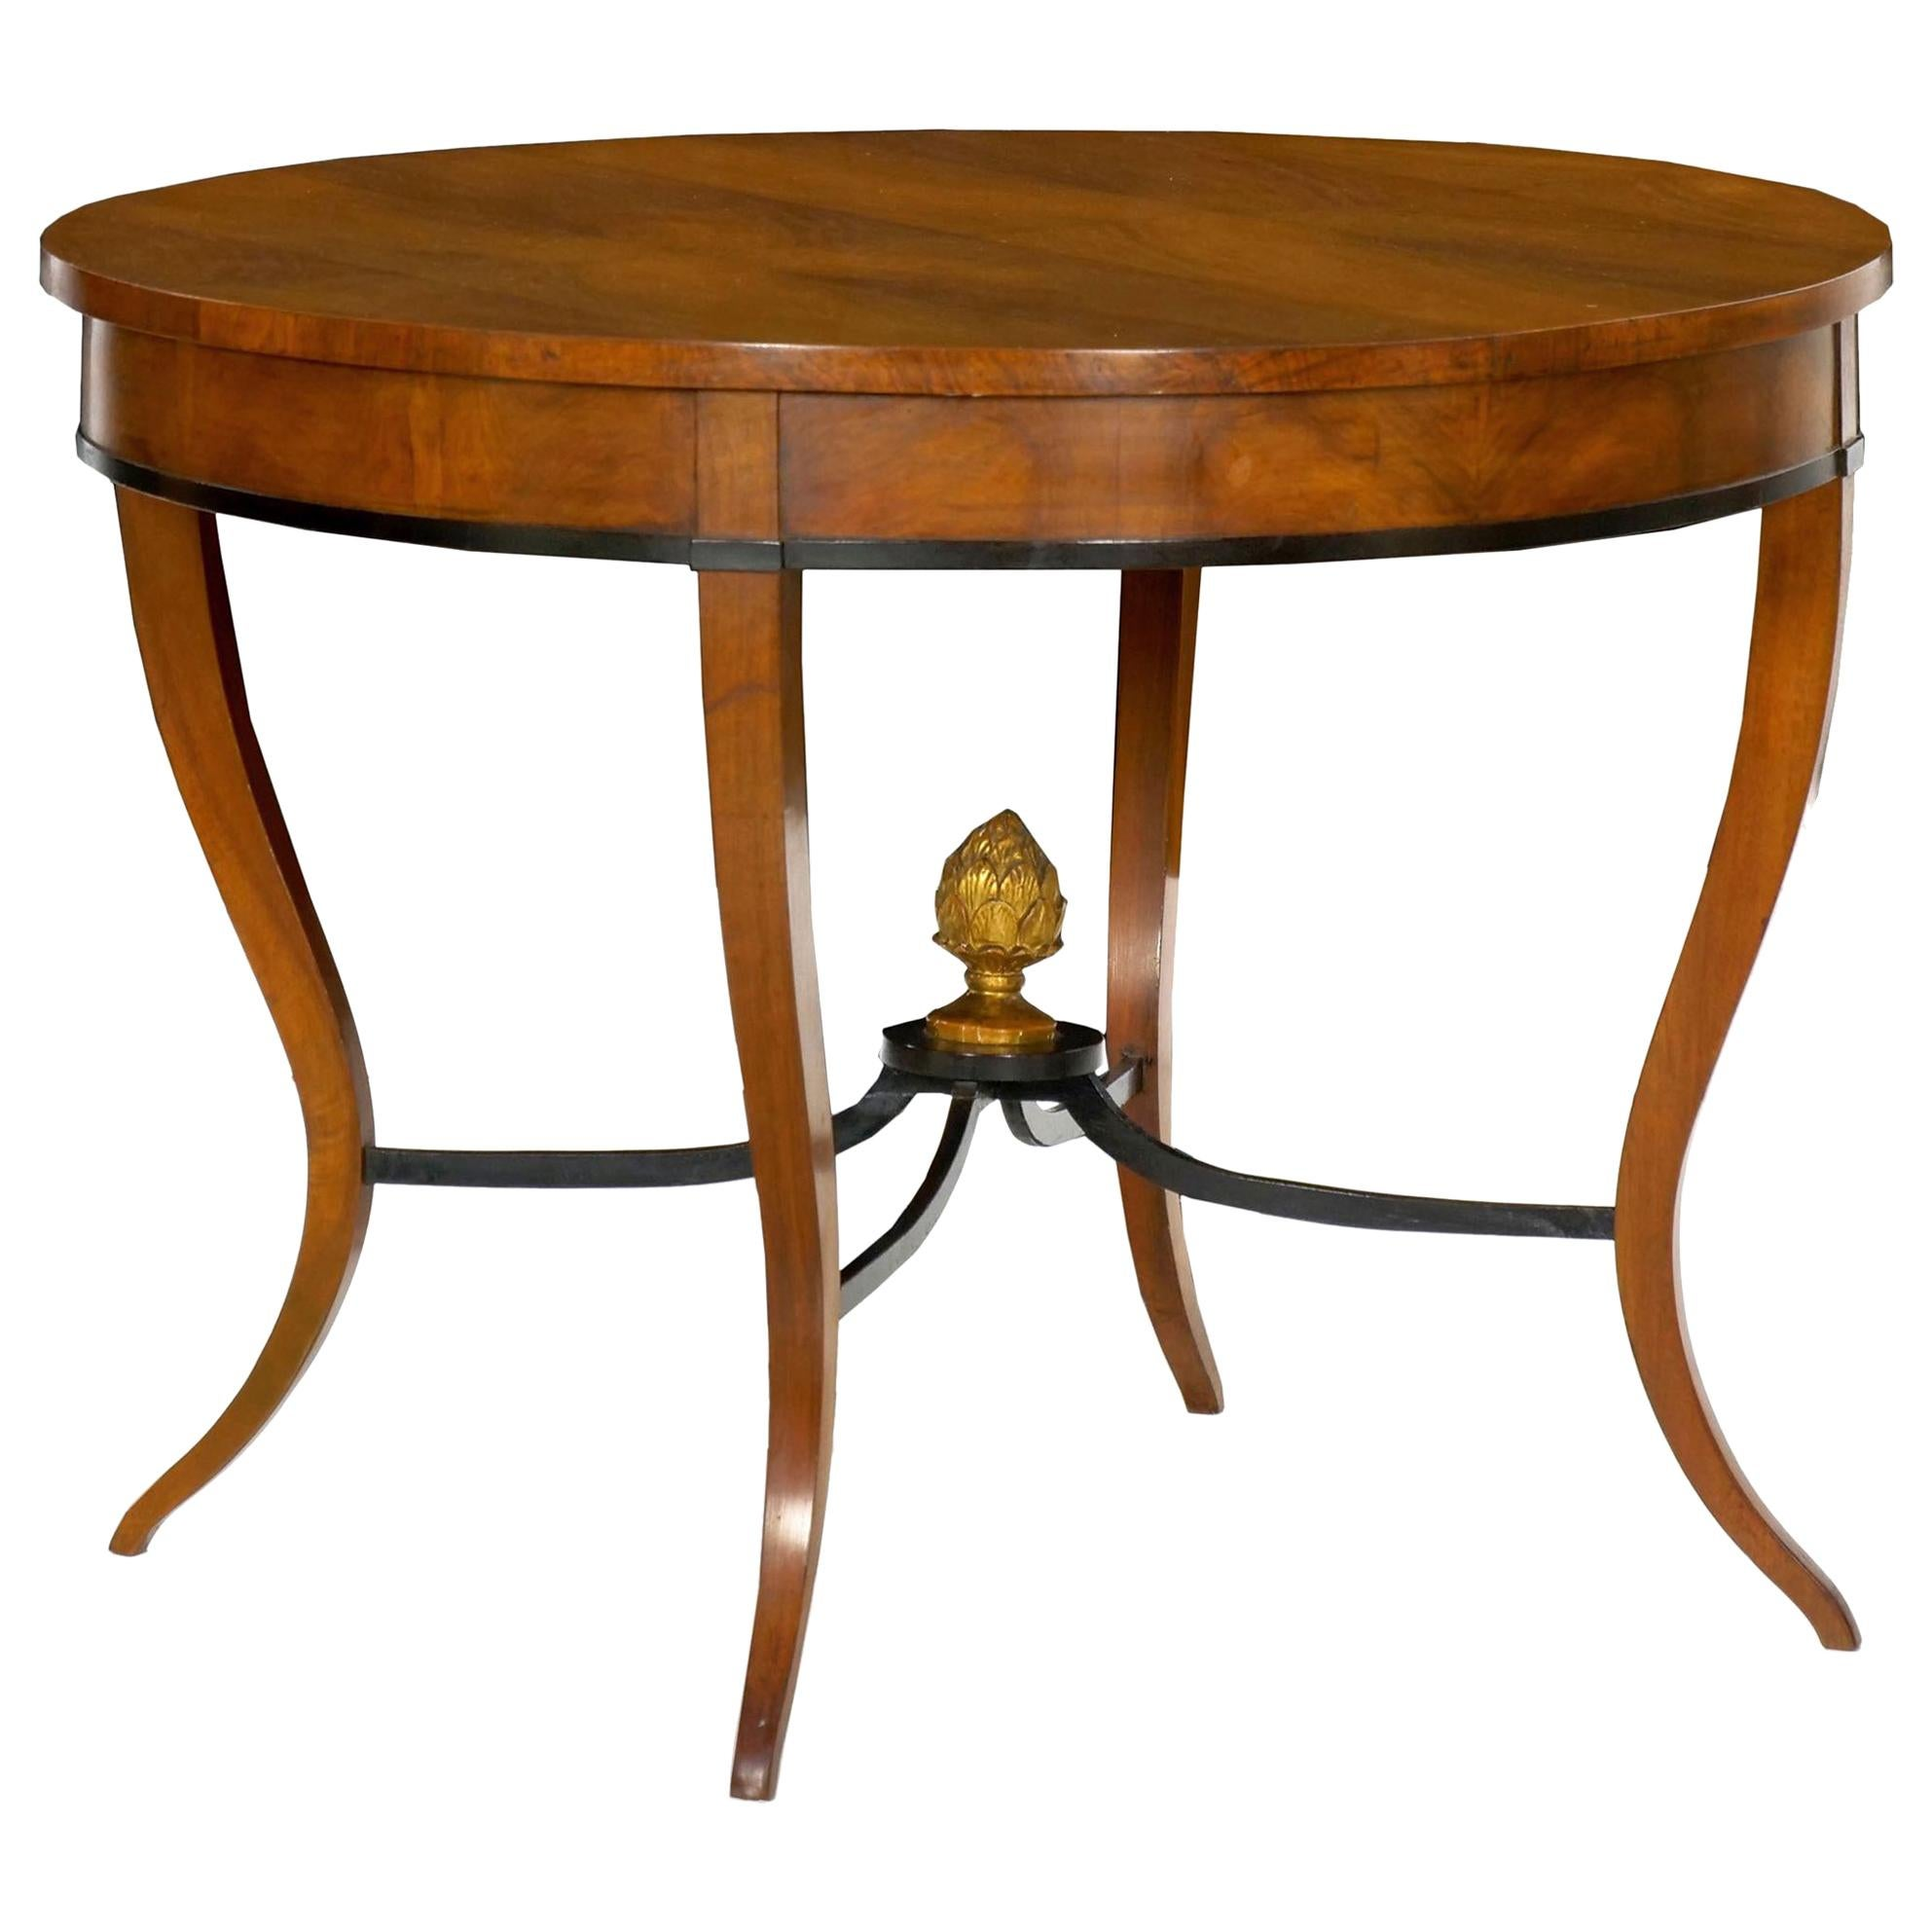 Attrayant Austrian Biedermeier Fruitwood Round Center Hall Table, 19th Century At  1stdibs